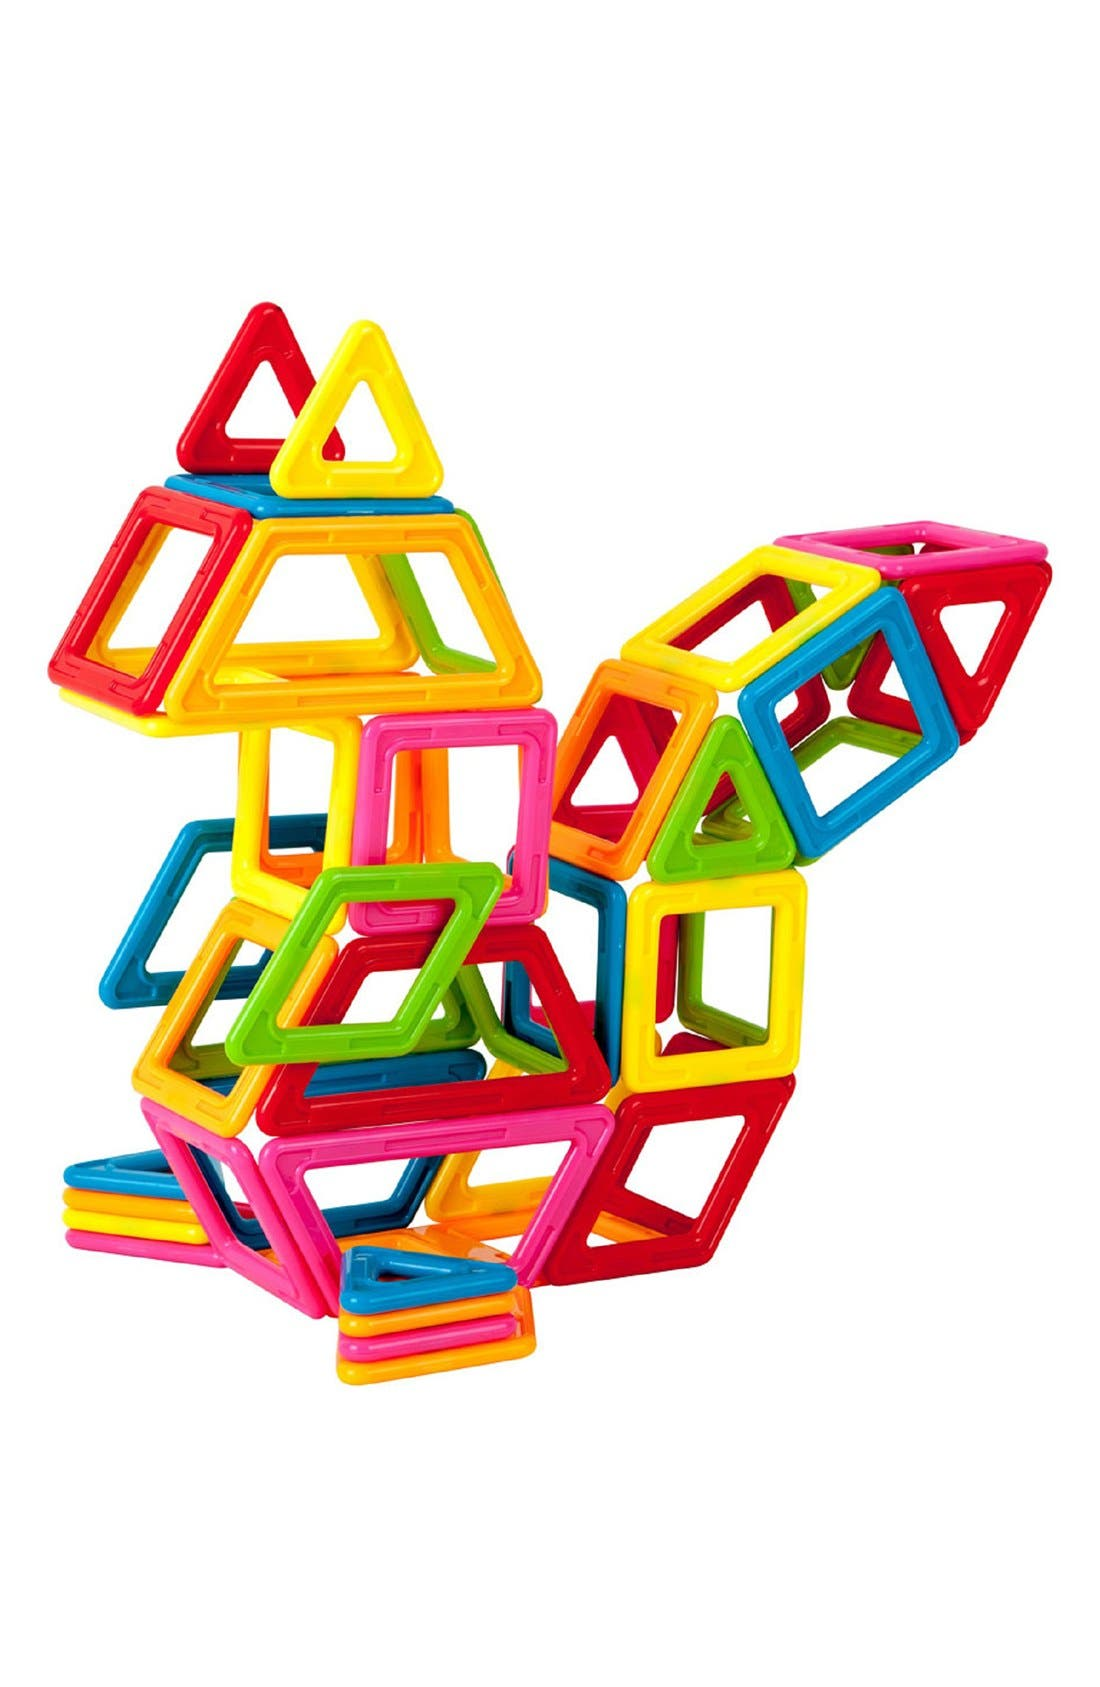 'My First' Magnetic Construction Set,                             Alternate thumbnail 6, color,                             Rainbow